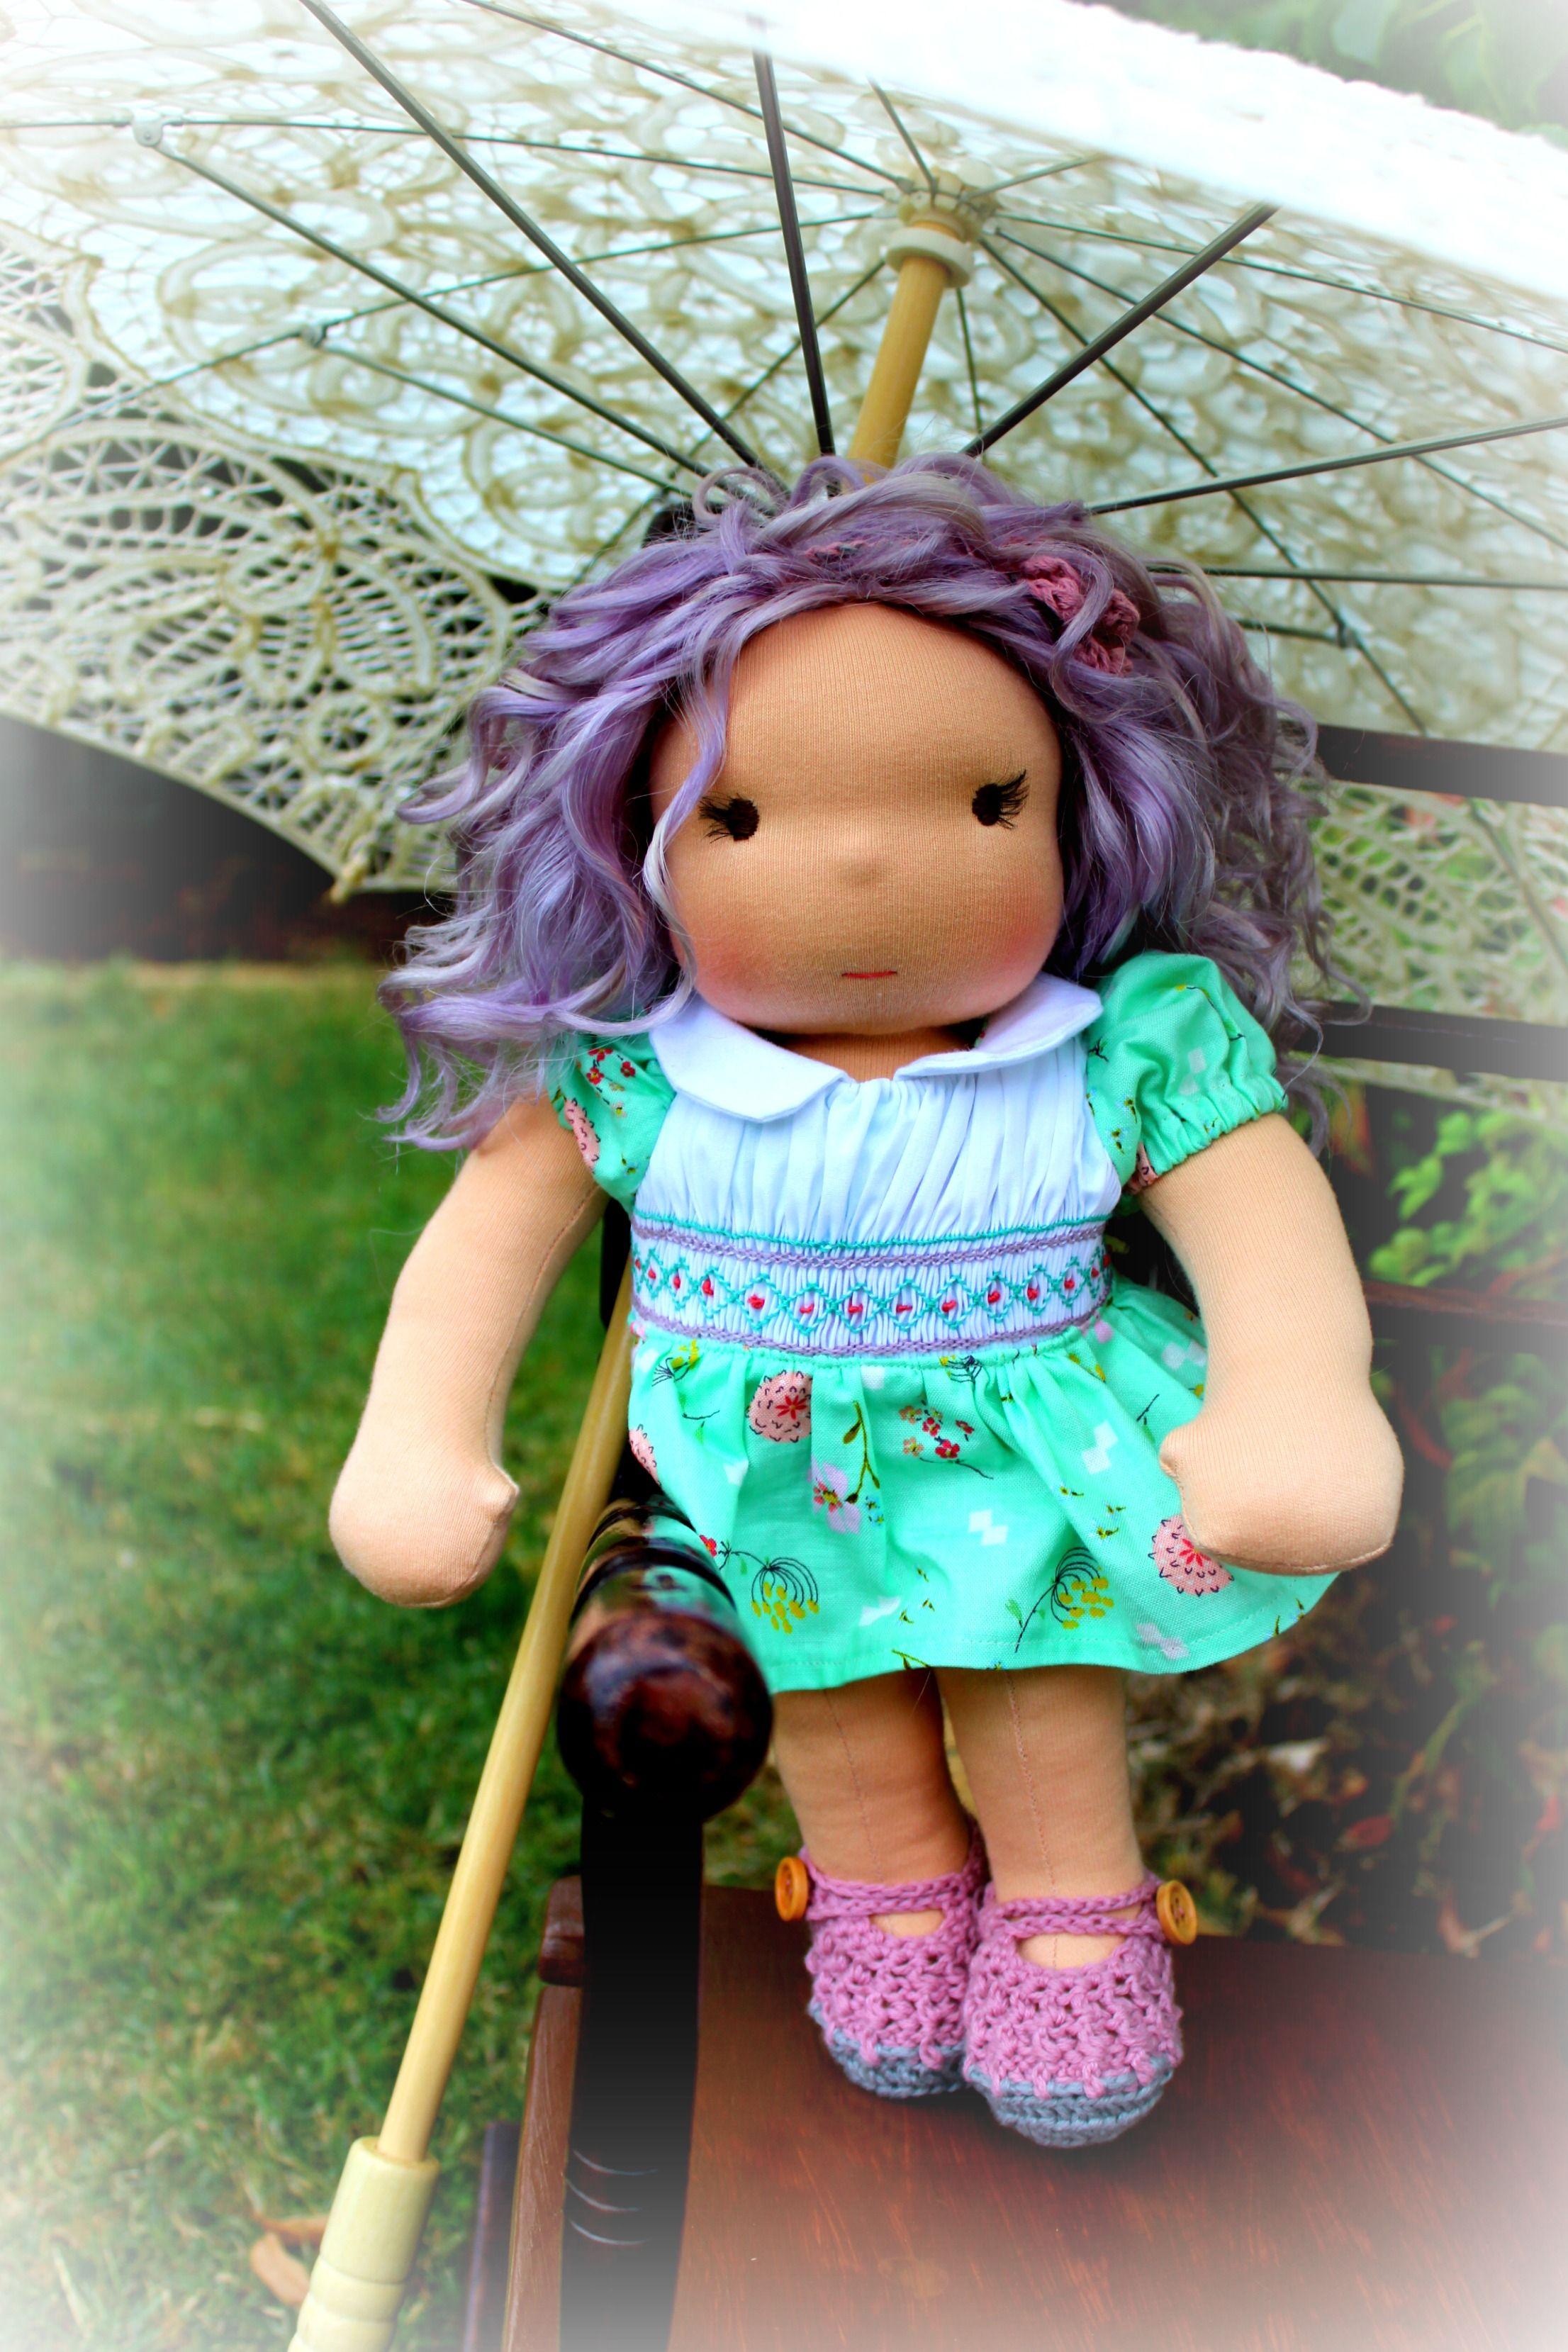 Pretty Arabella with her lilac curly hair.